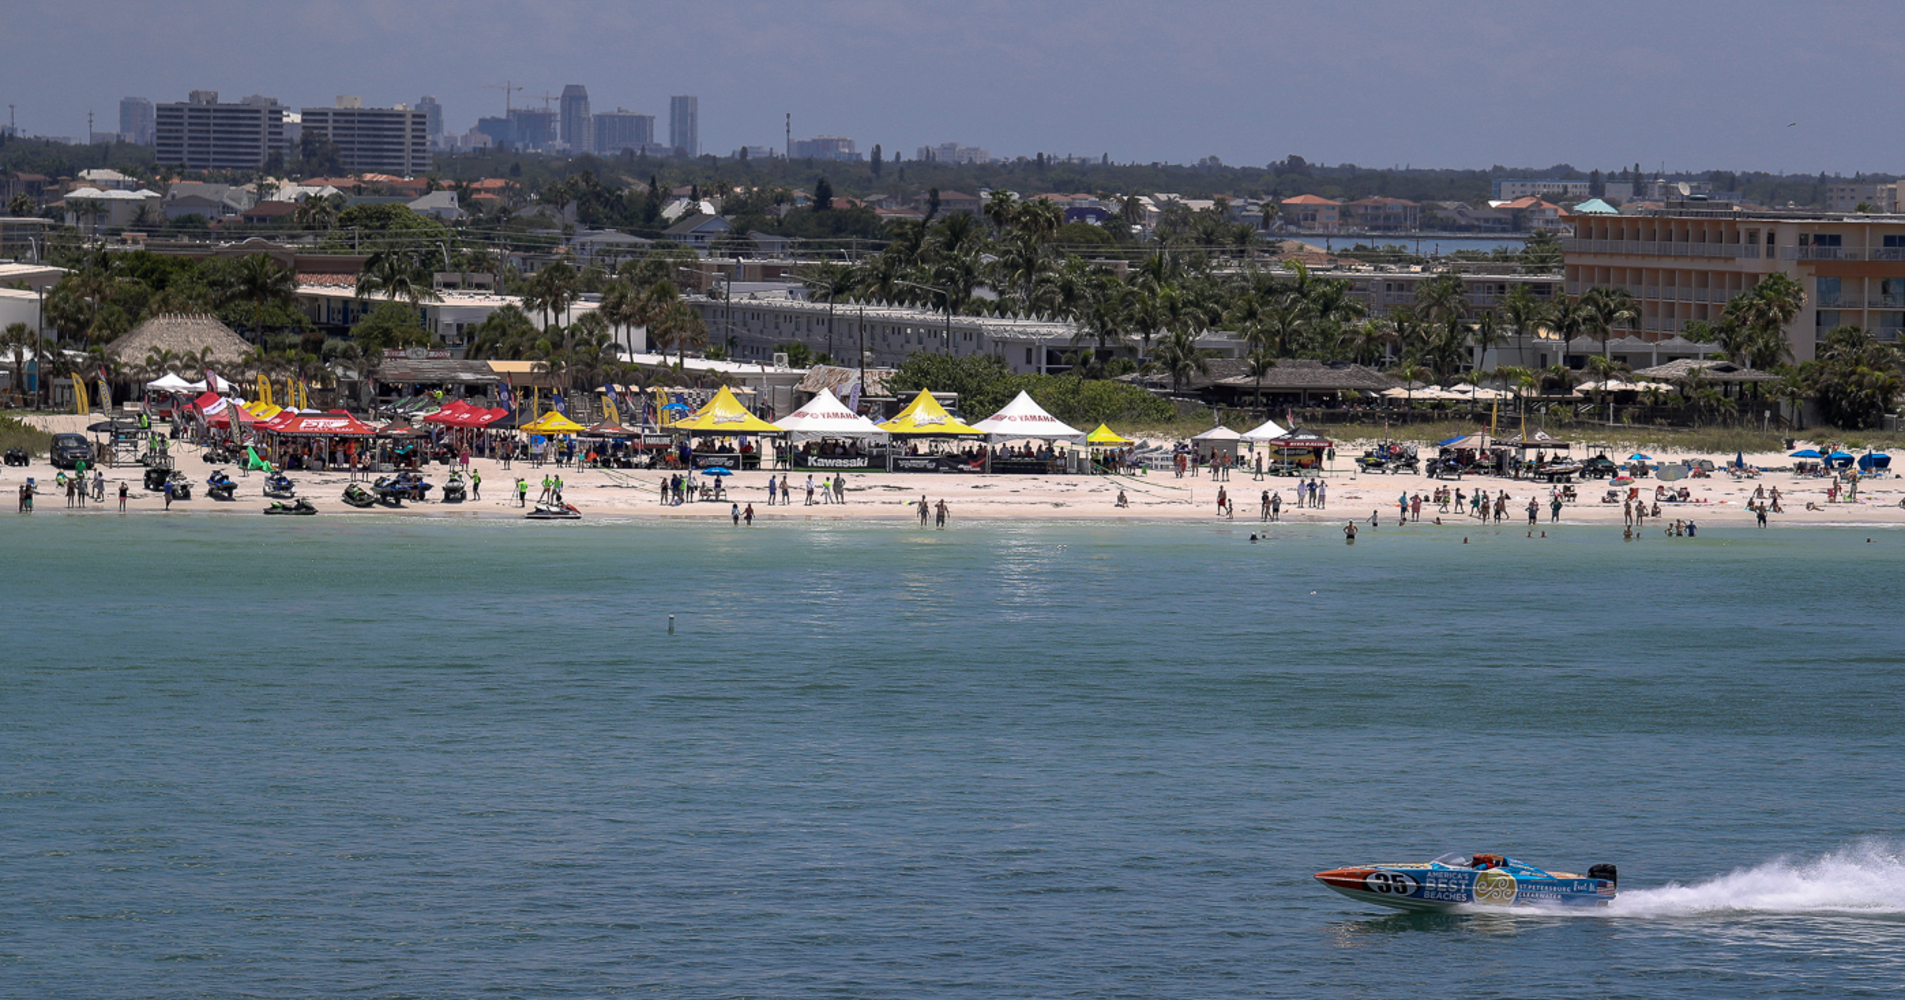 St Pete Beach is one of four venues to hold its place on the calendar in 2018